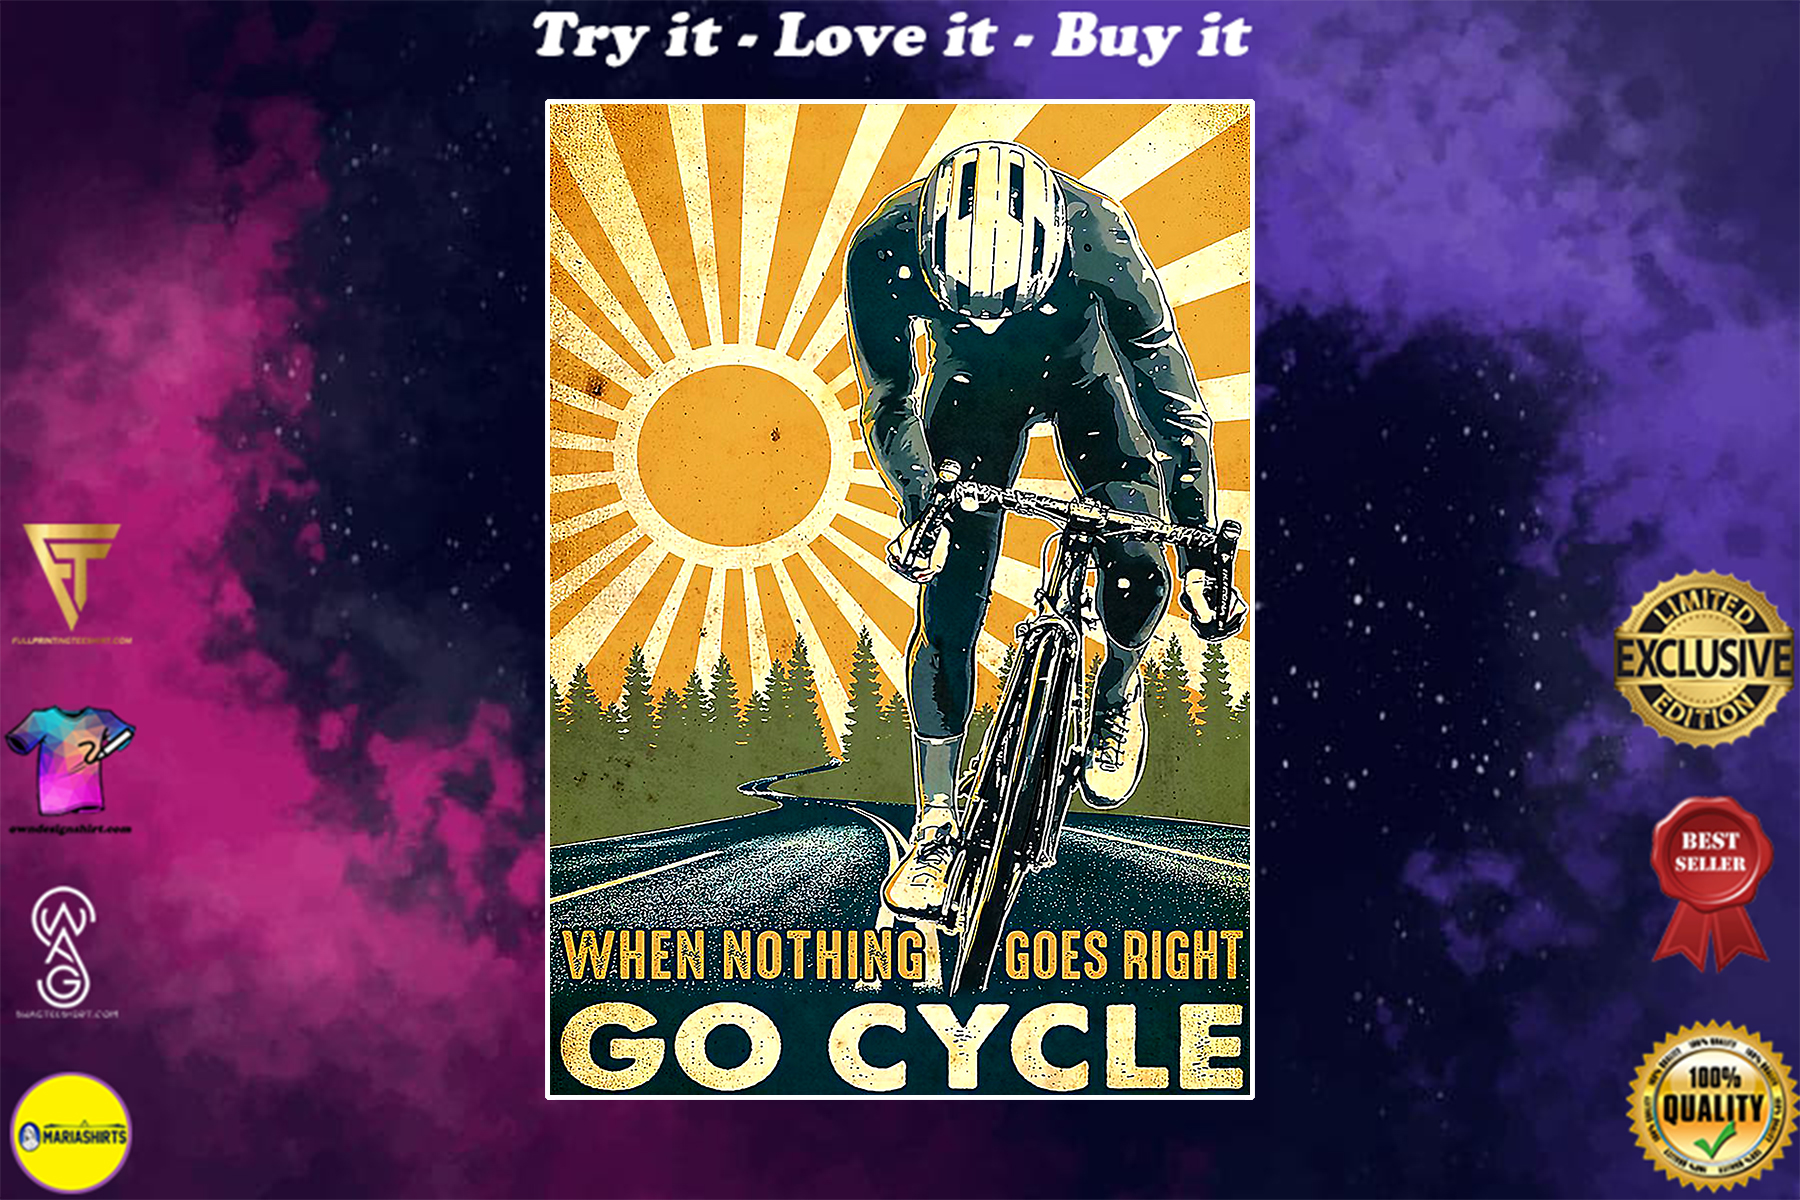 cycling when nothing goes right go cycle vintage poster